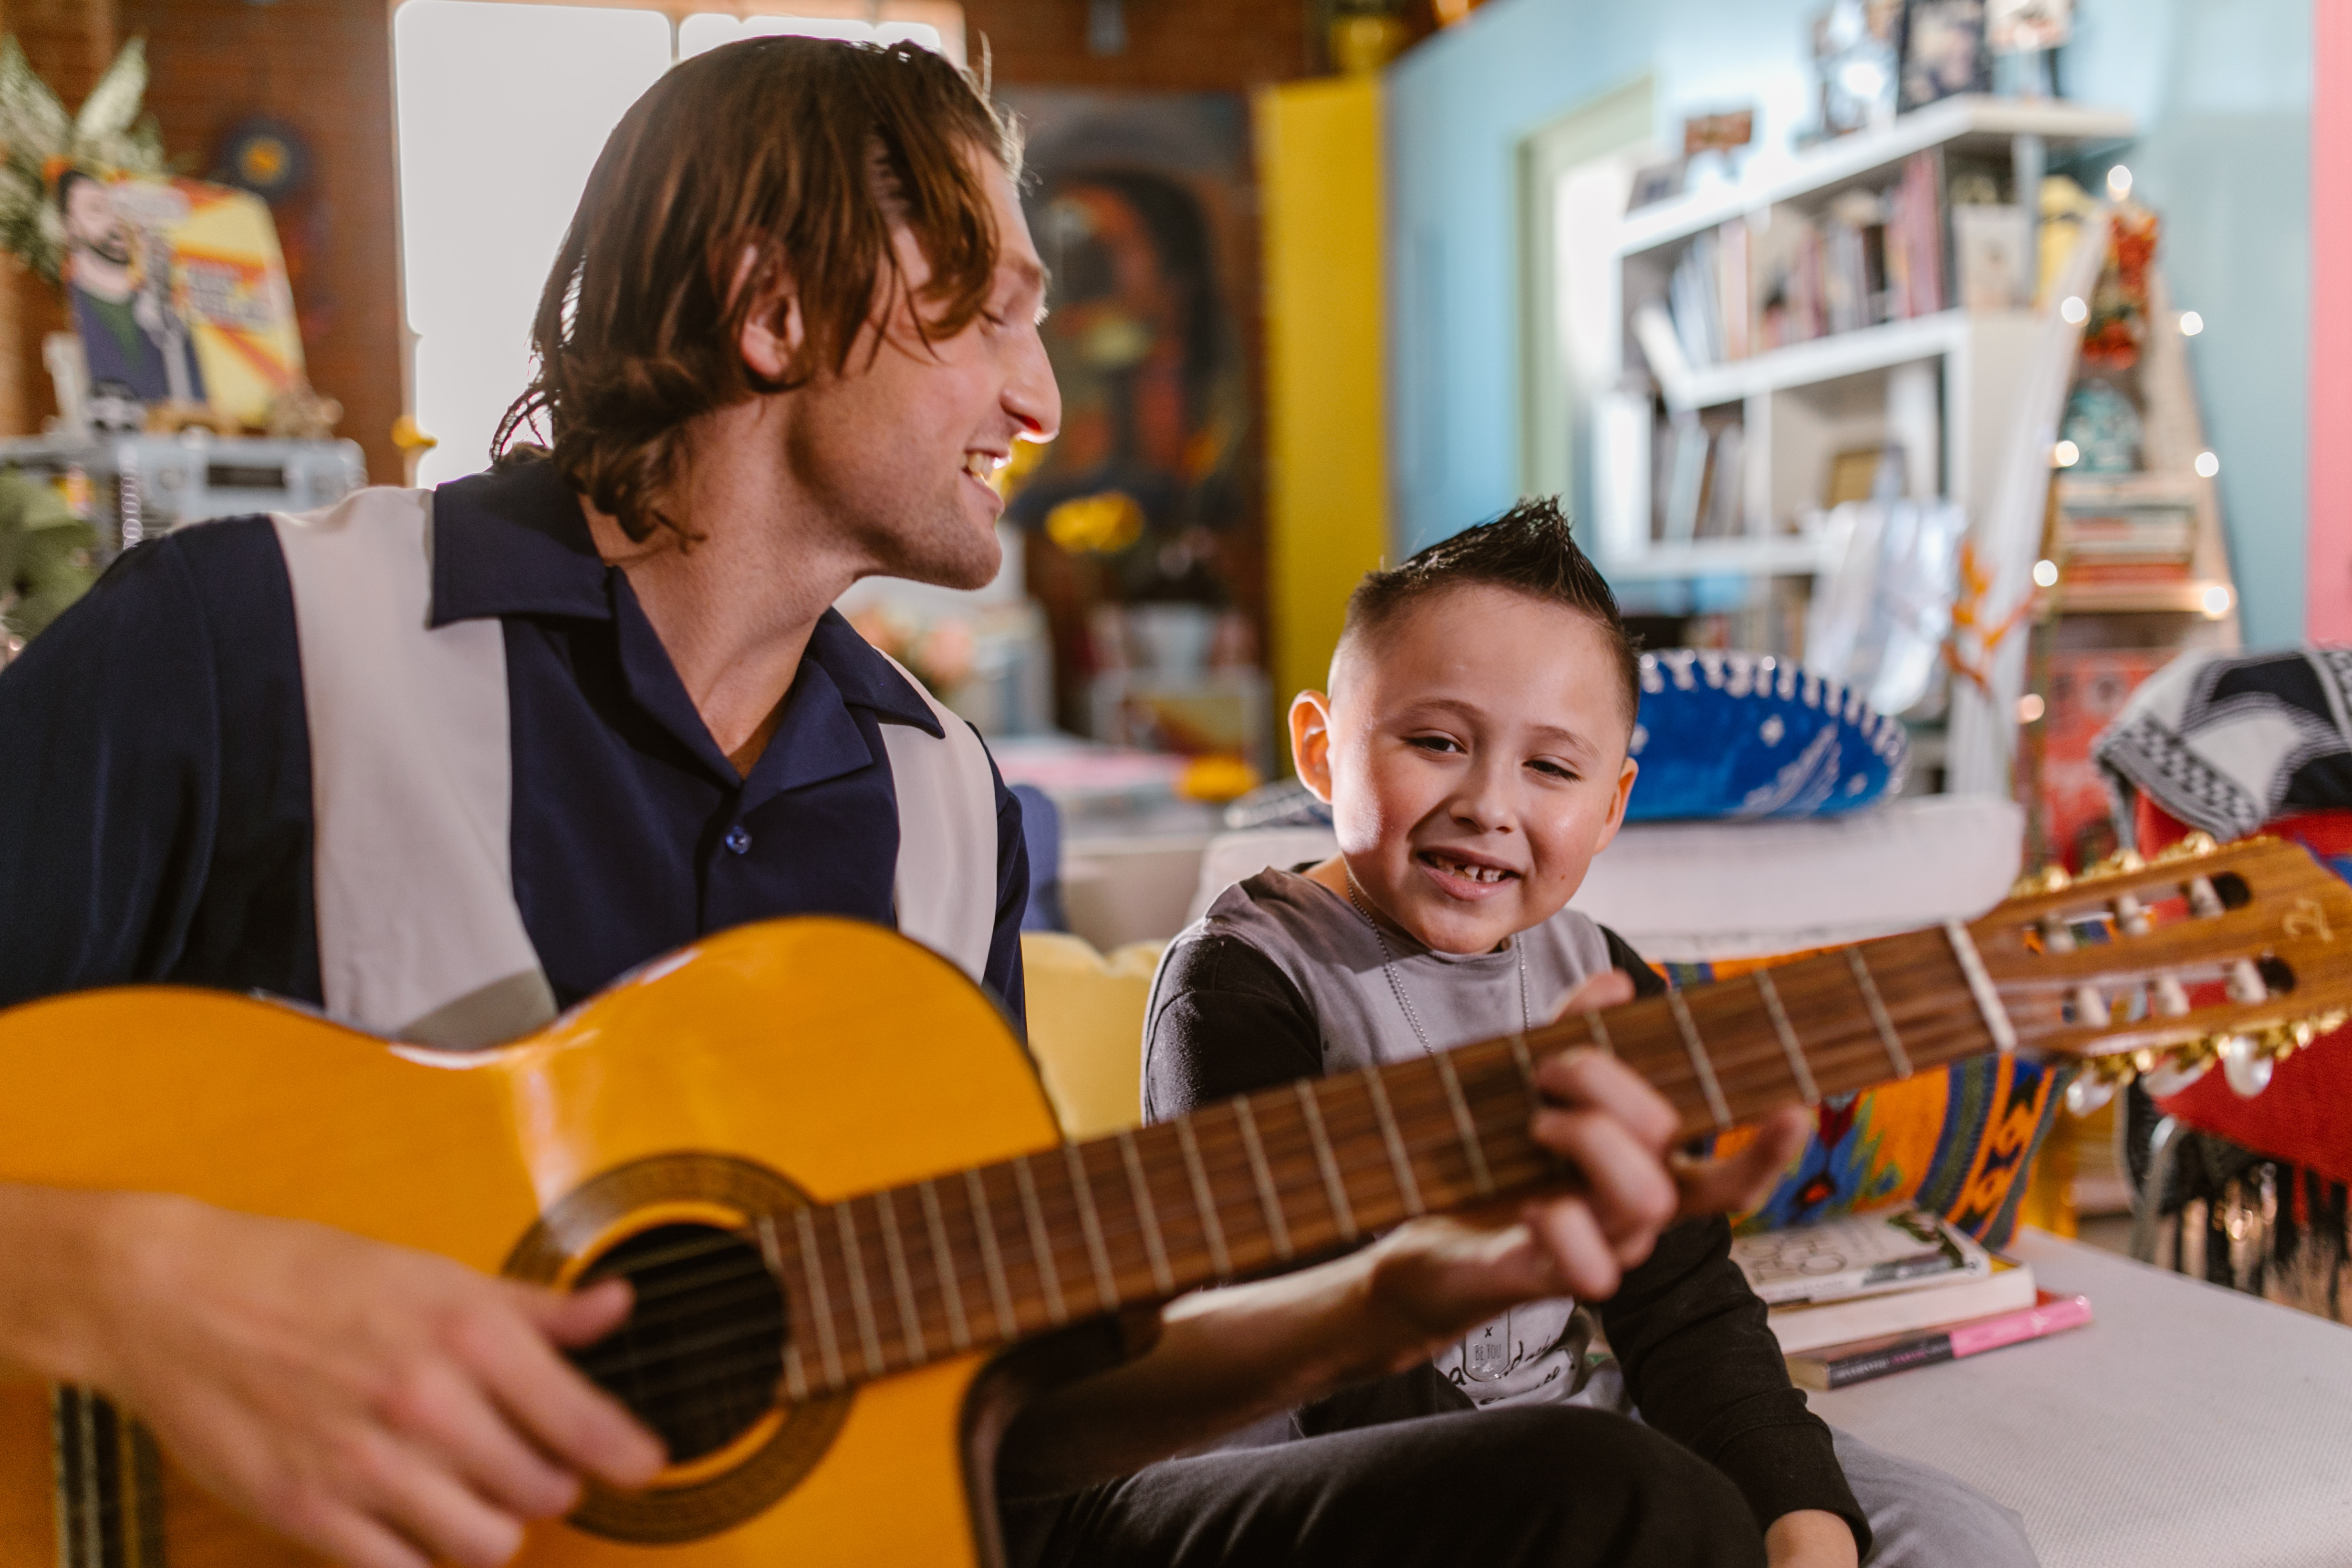 guitar lessons for kids and adults near me in oakhurst nj